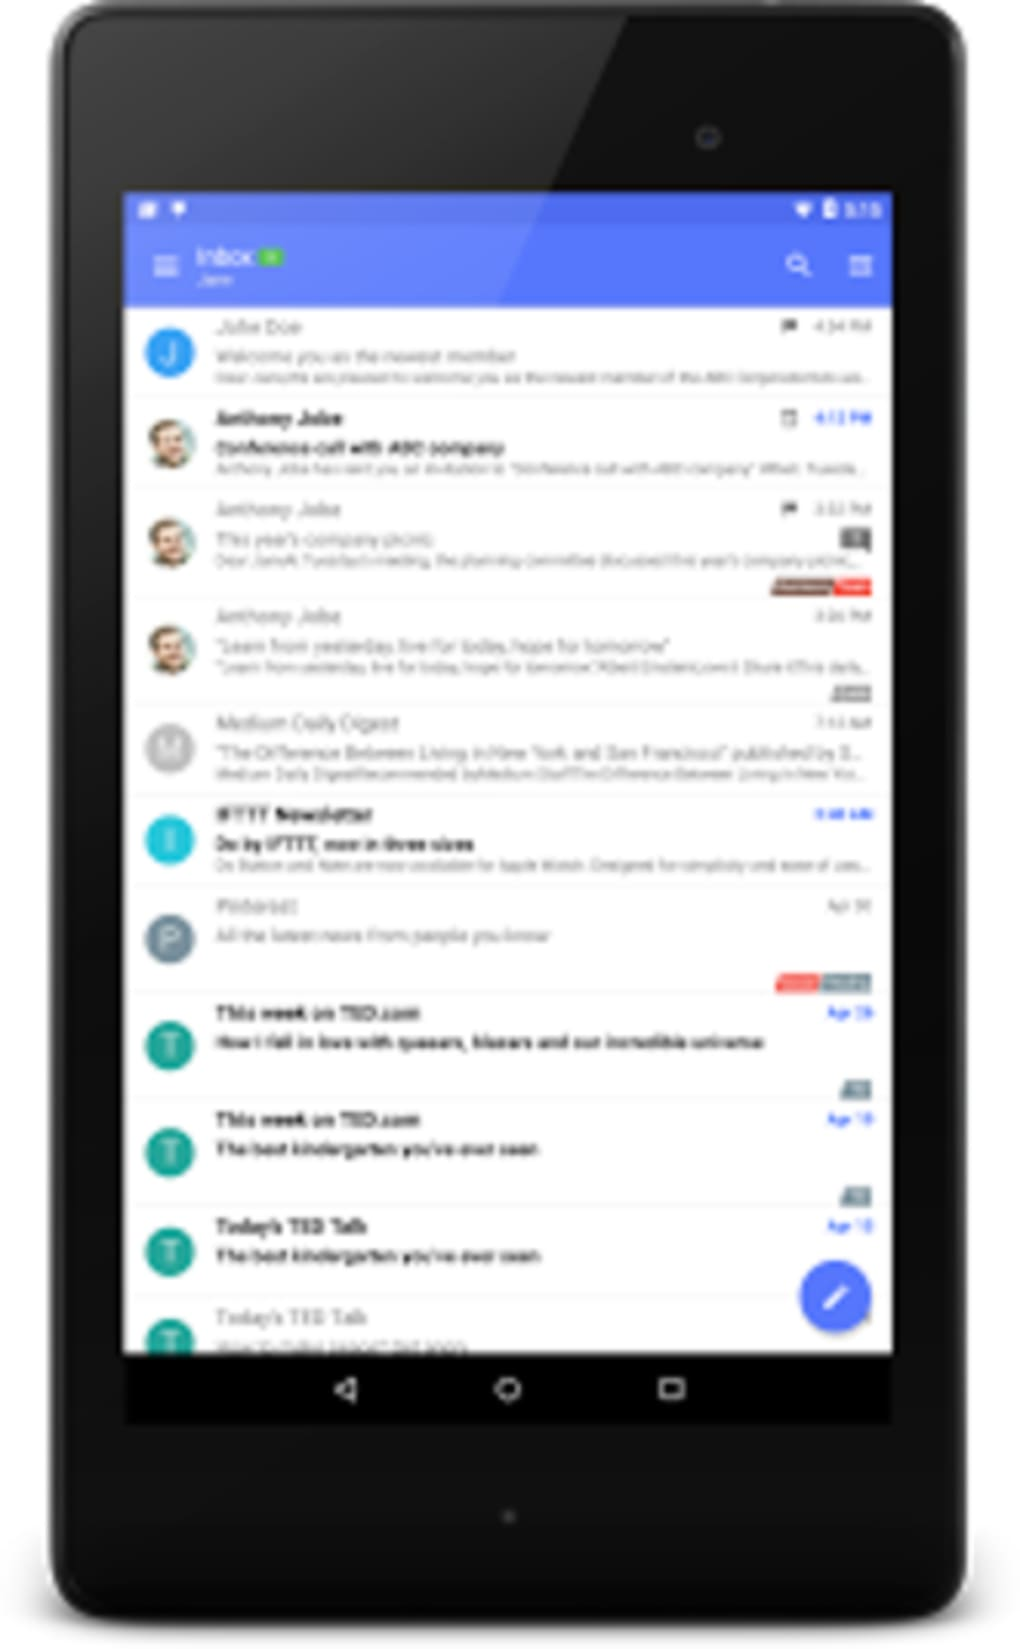 How Do I Set Up A Microsoft Exchange Email Account On An Android Device